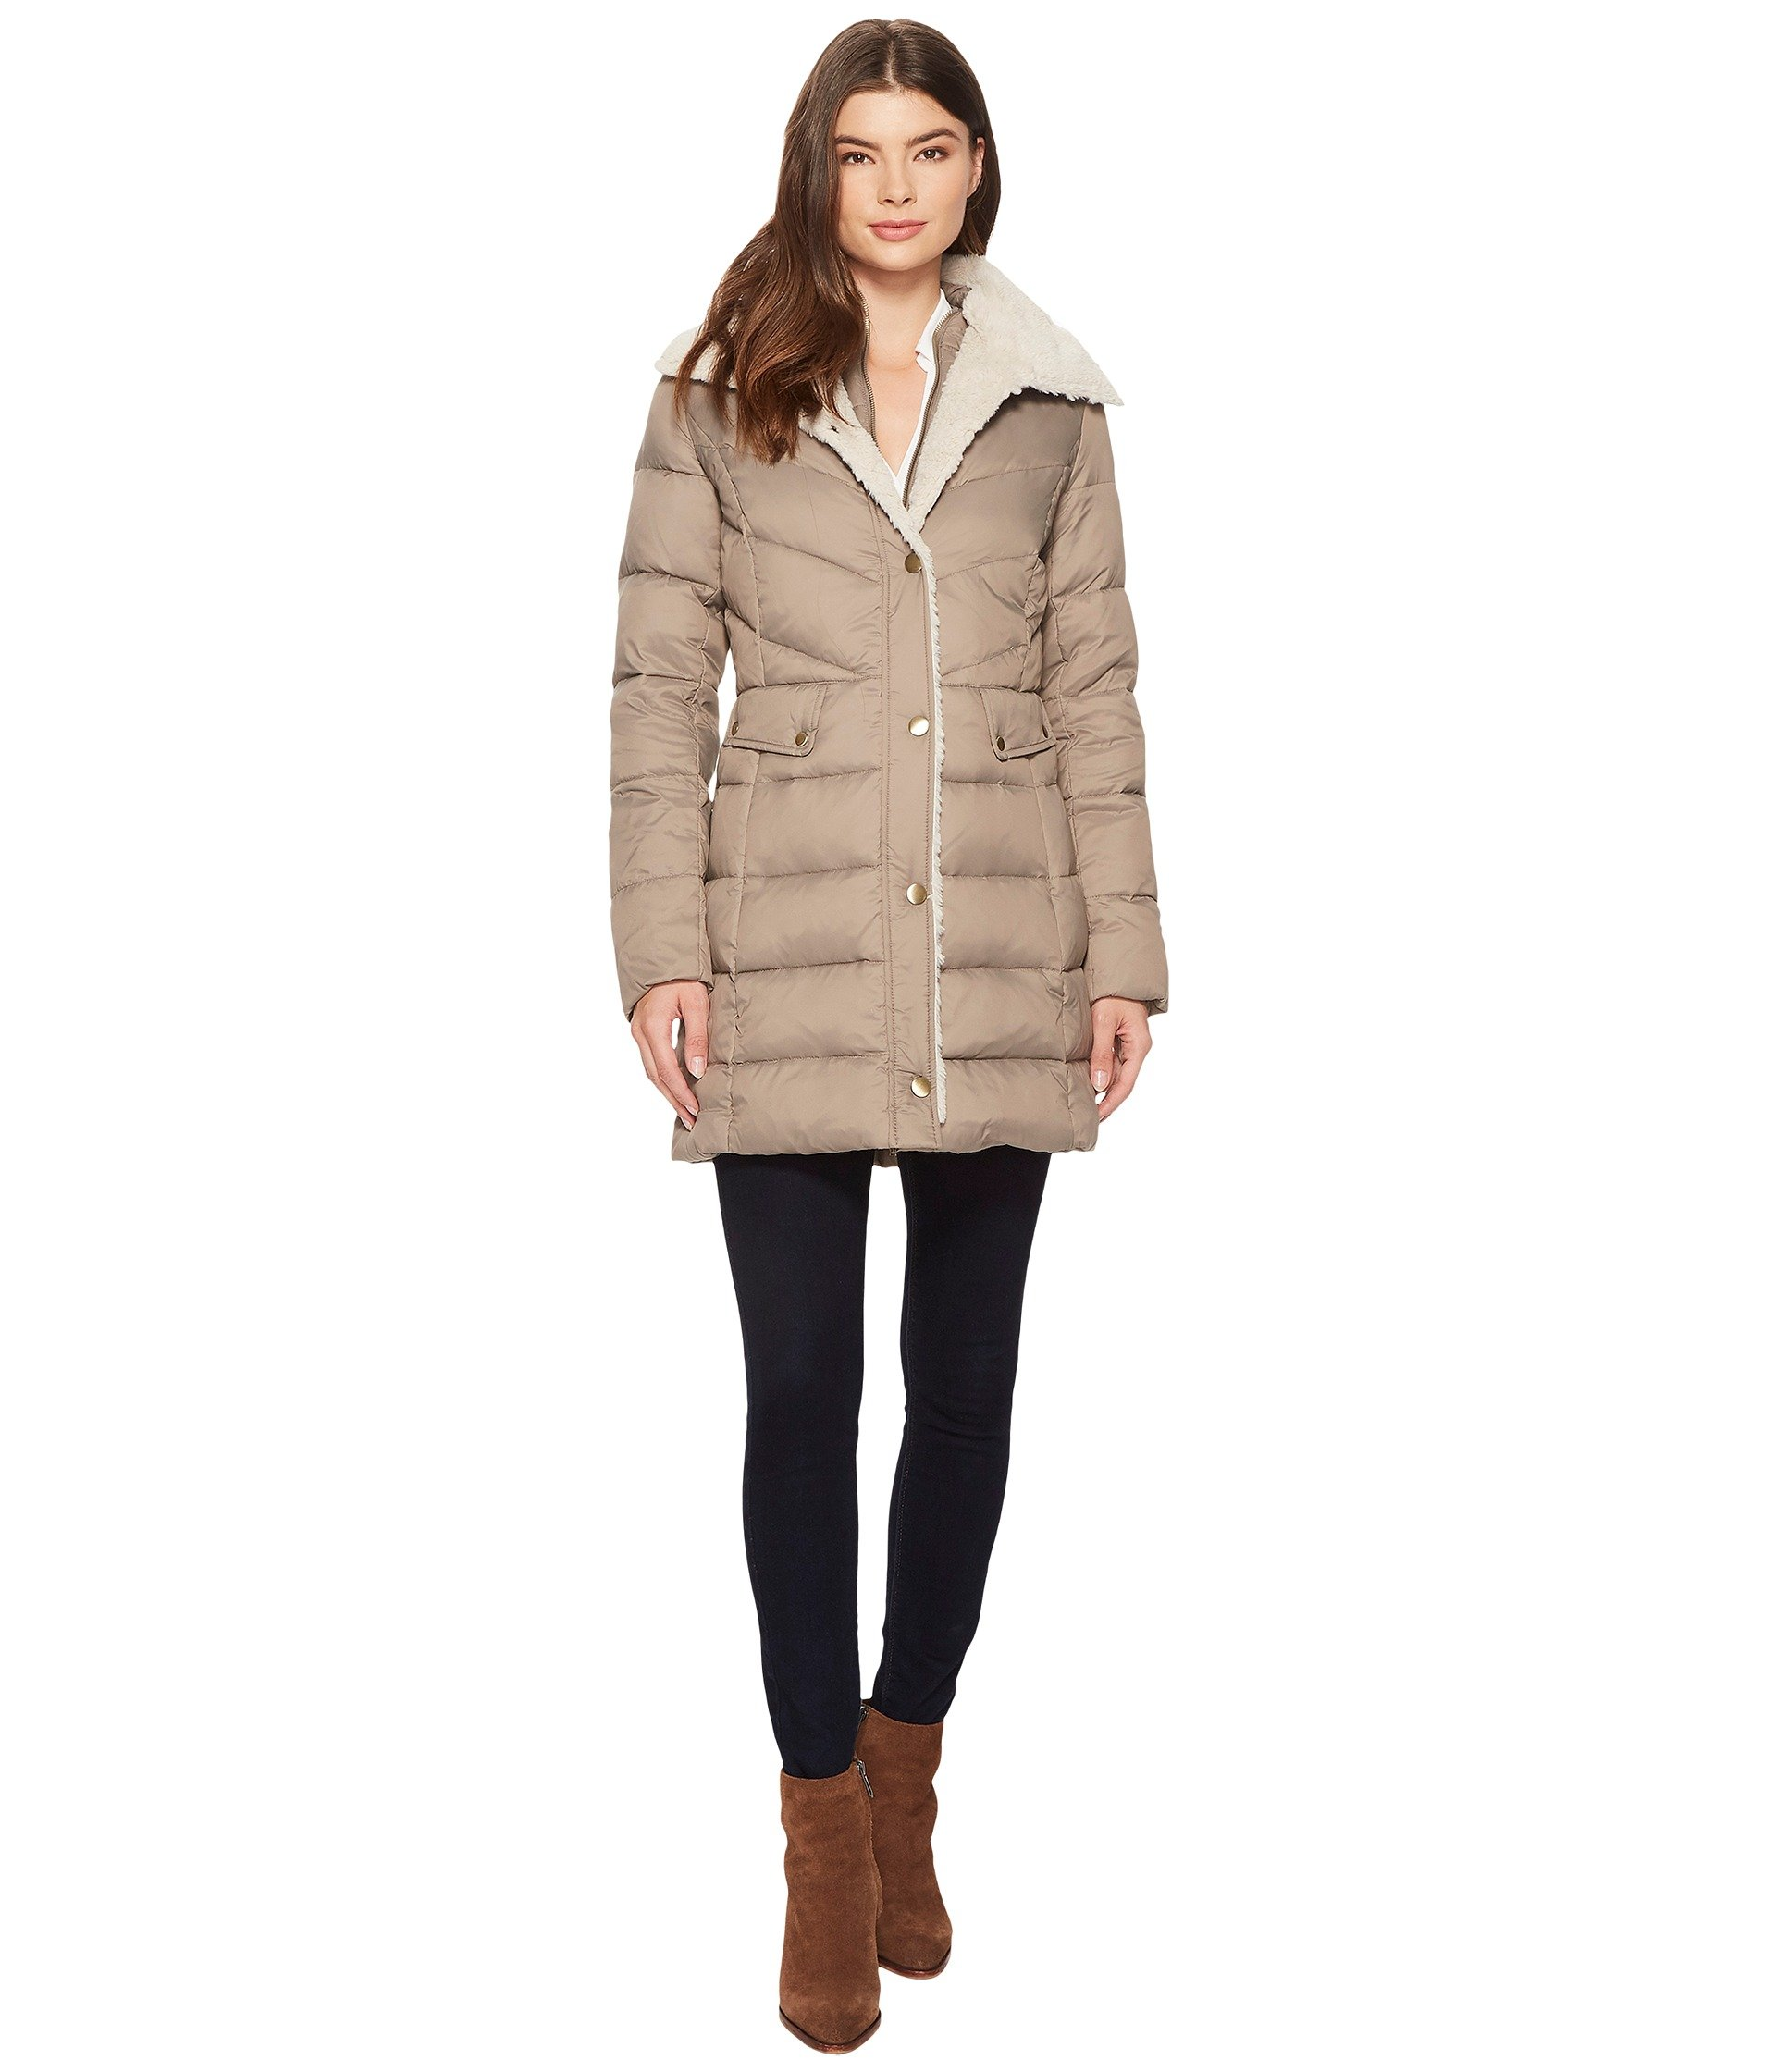 Kenneth Cole New York, Coats & Outerwear at 6pm.com : kenneth cole chevron quilted coat - Adamdwight.com